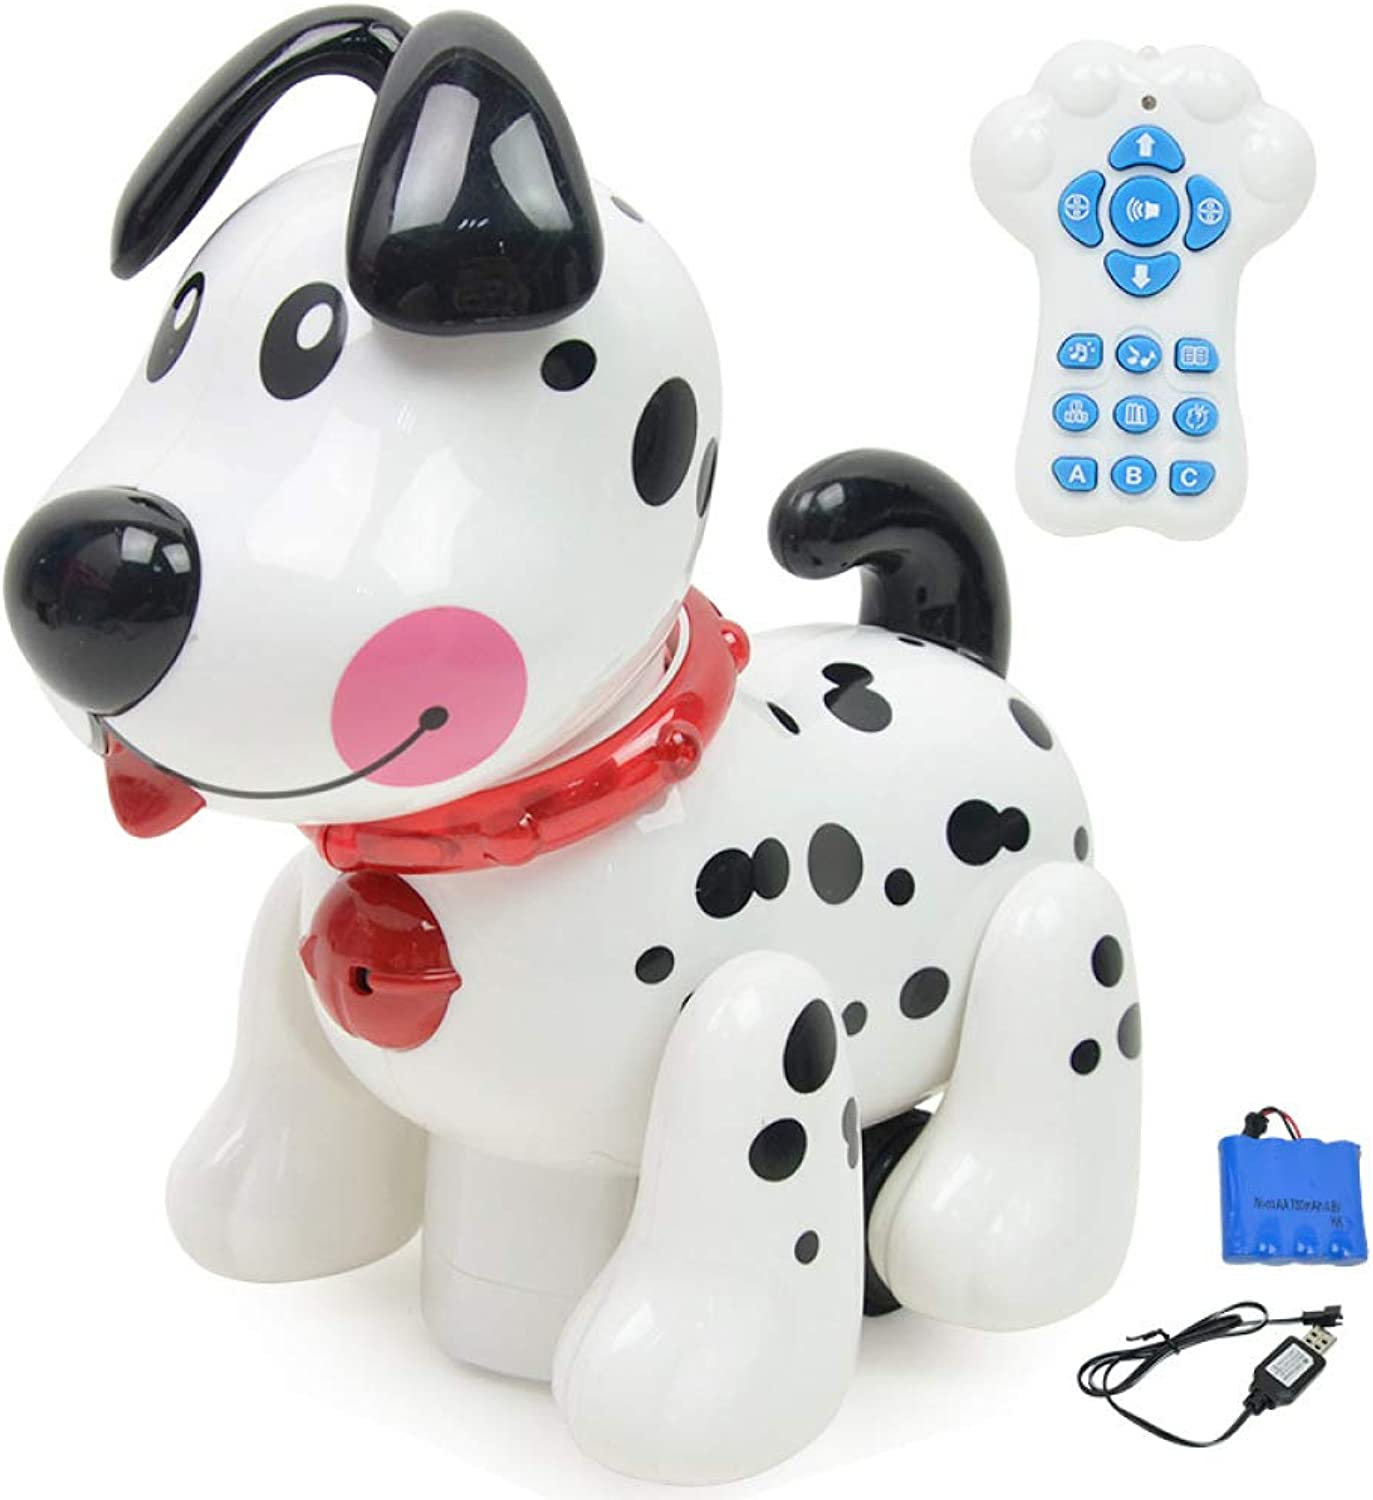 KYOKIM Electronic Pet Spot Dog Toy With Remote Control, Smart Touch Sensing